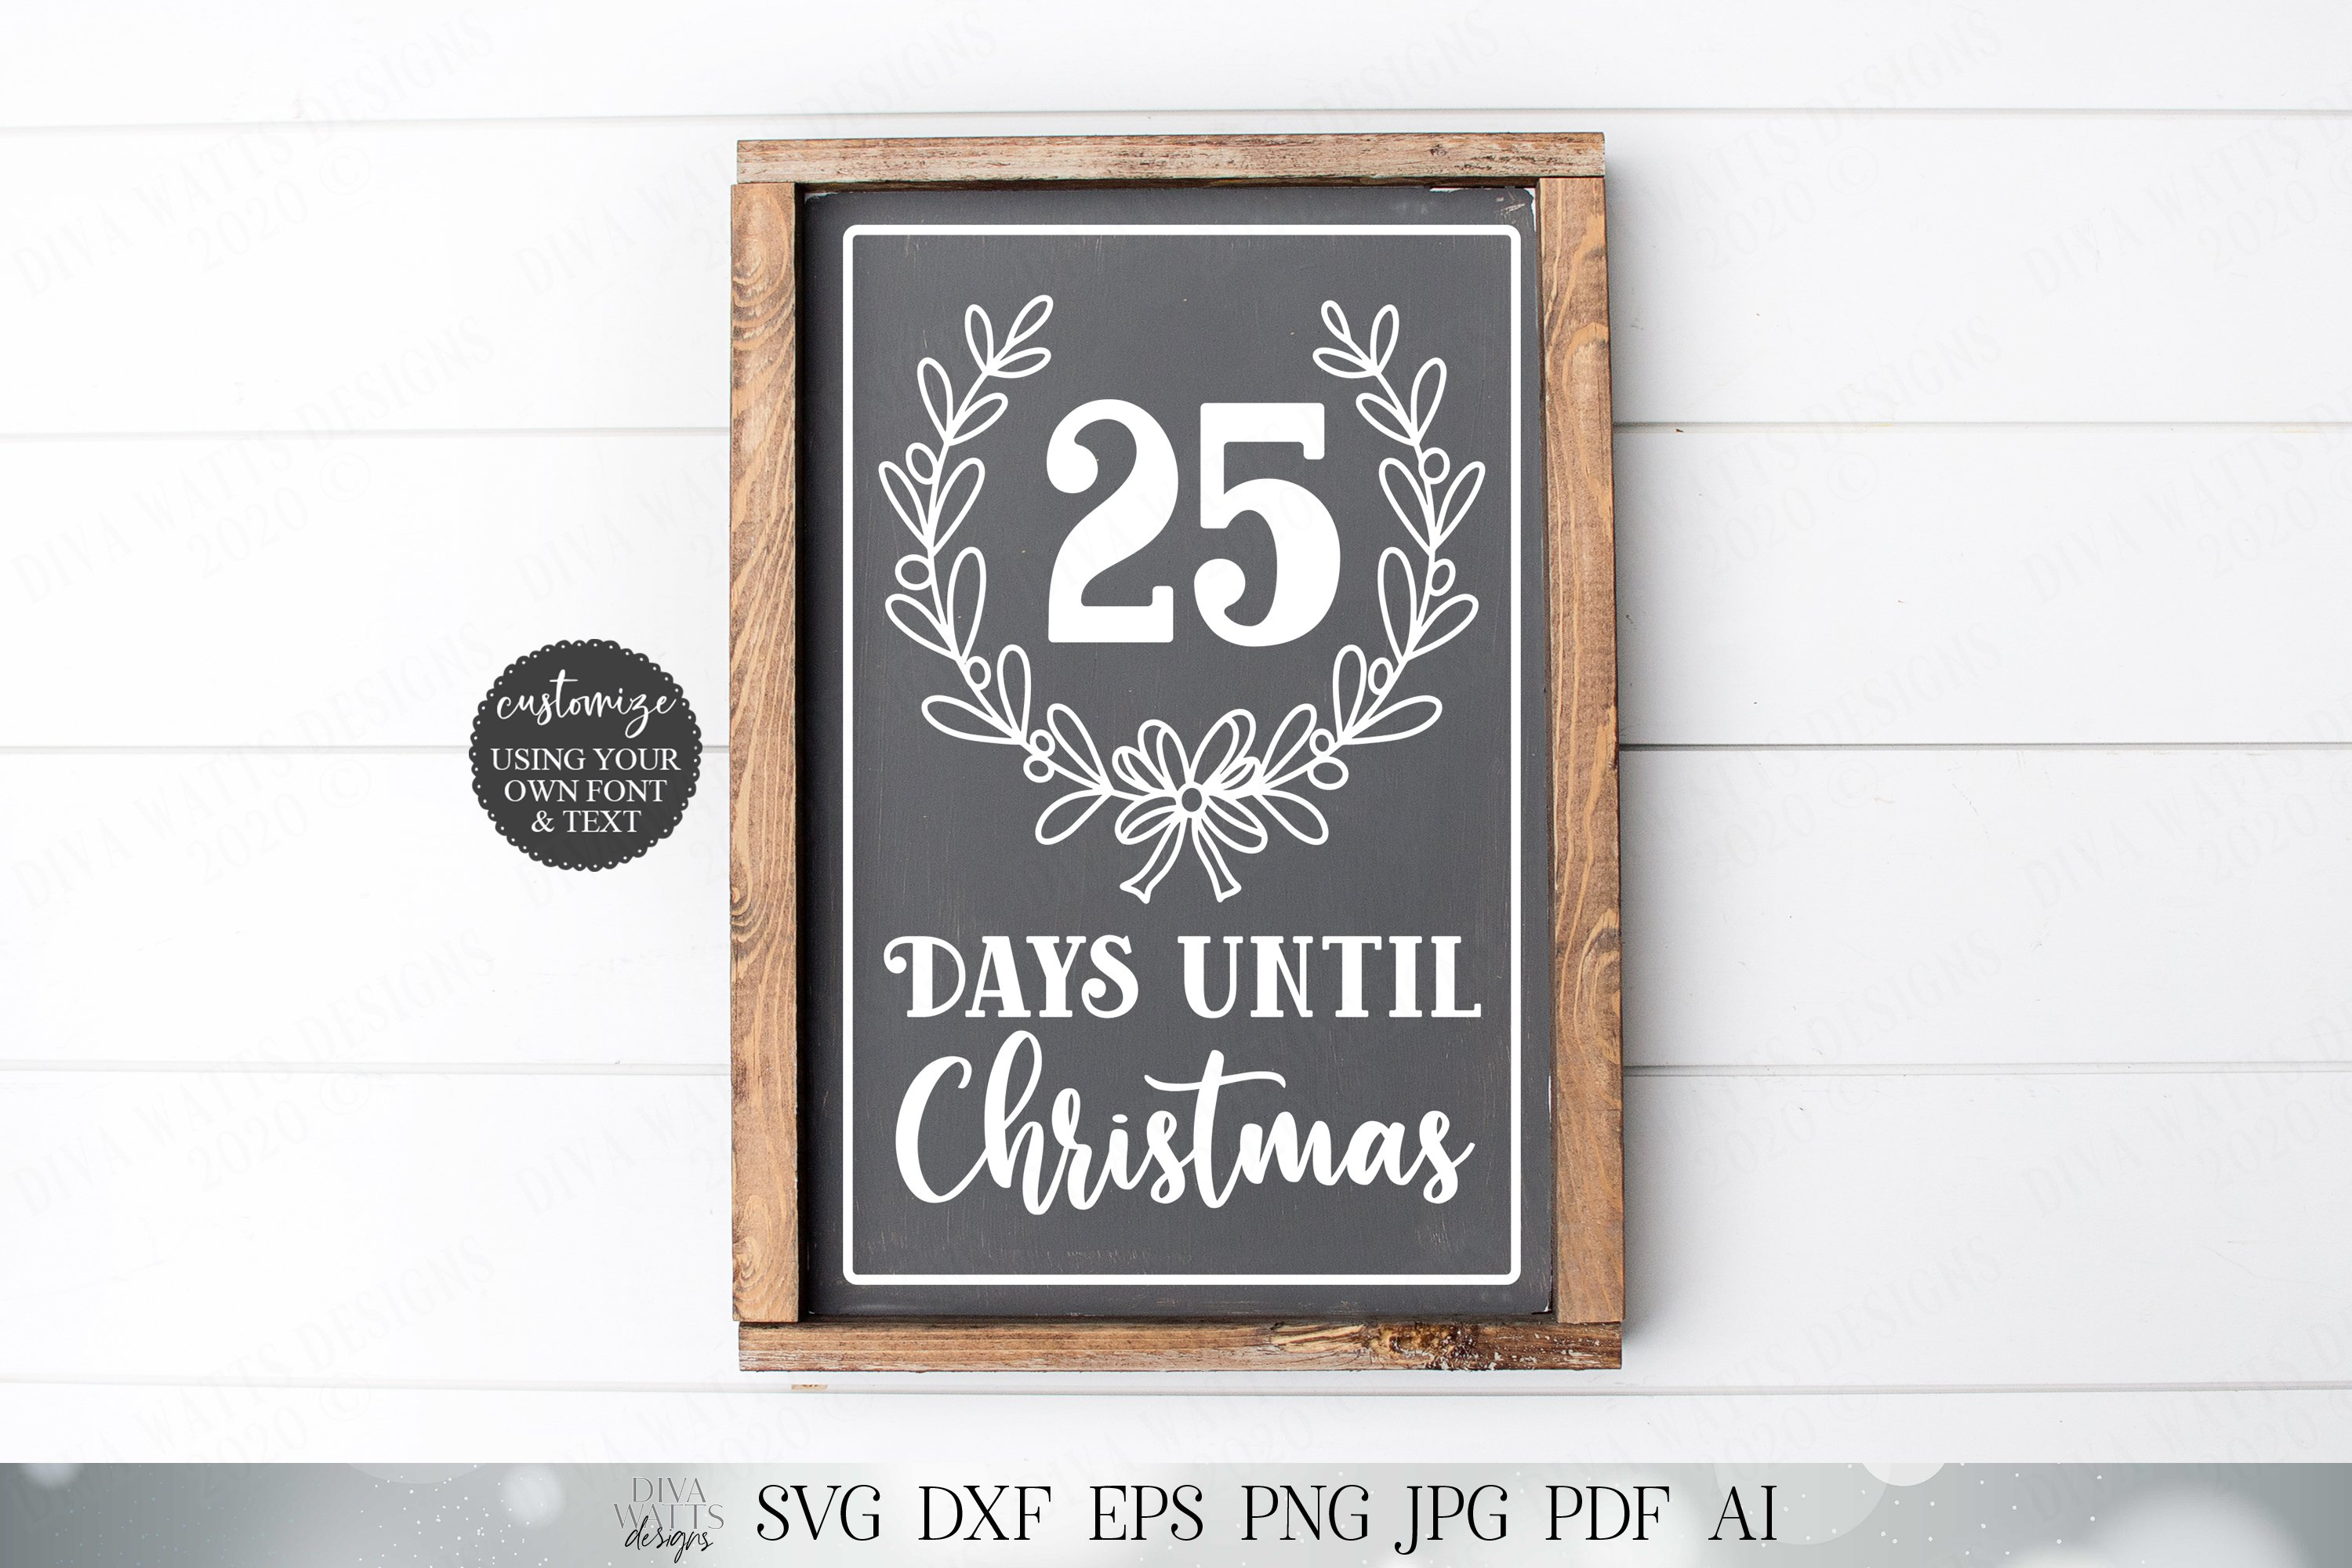 Days Until Christmas - Cutting File and Printable example image 3